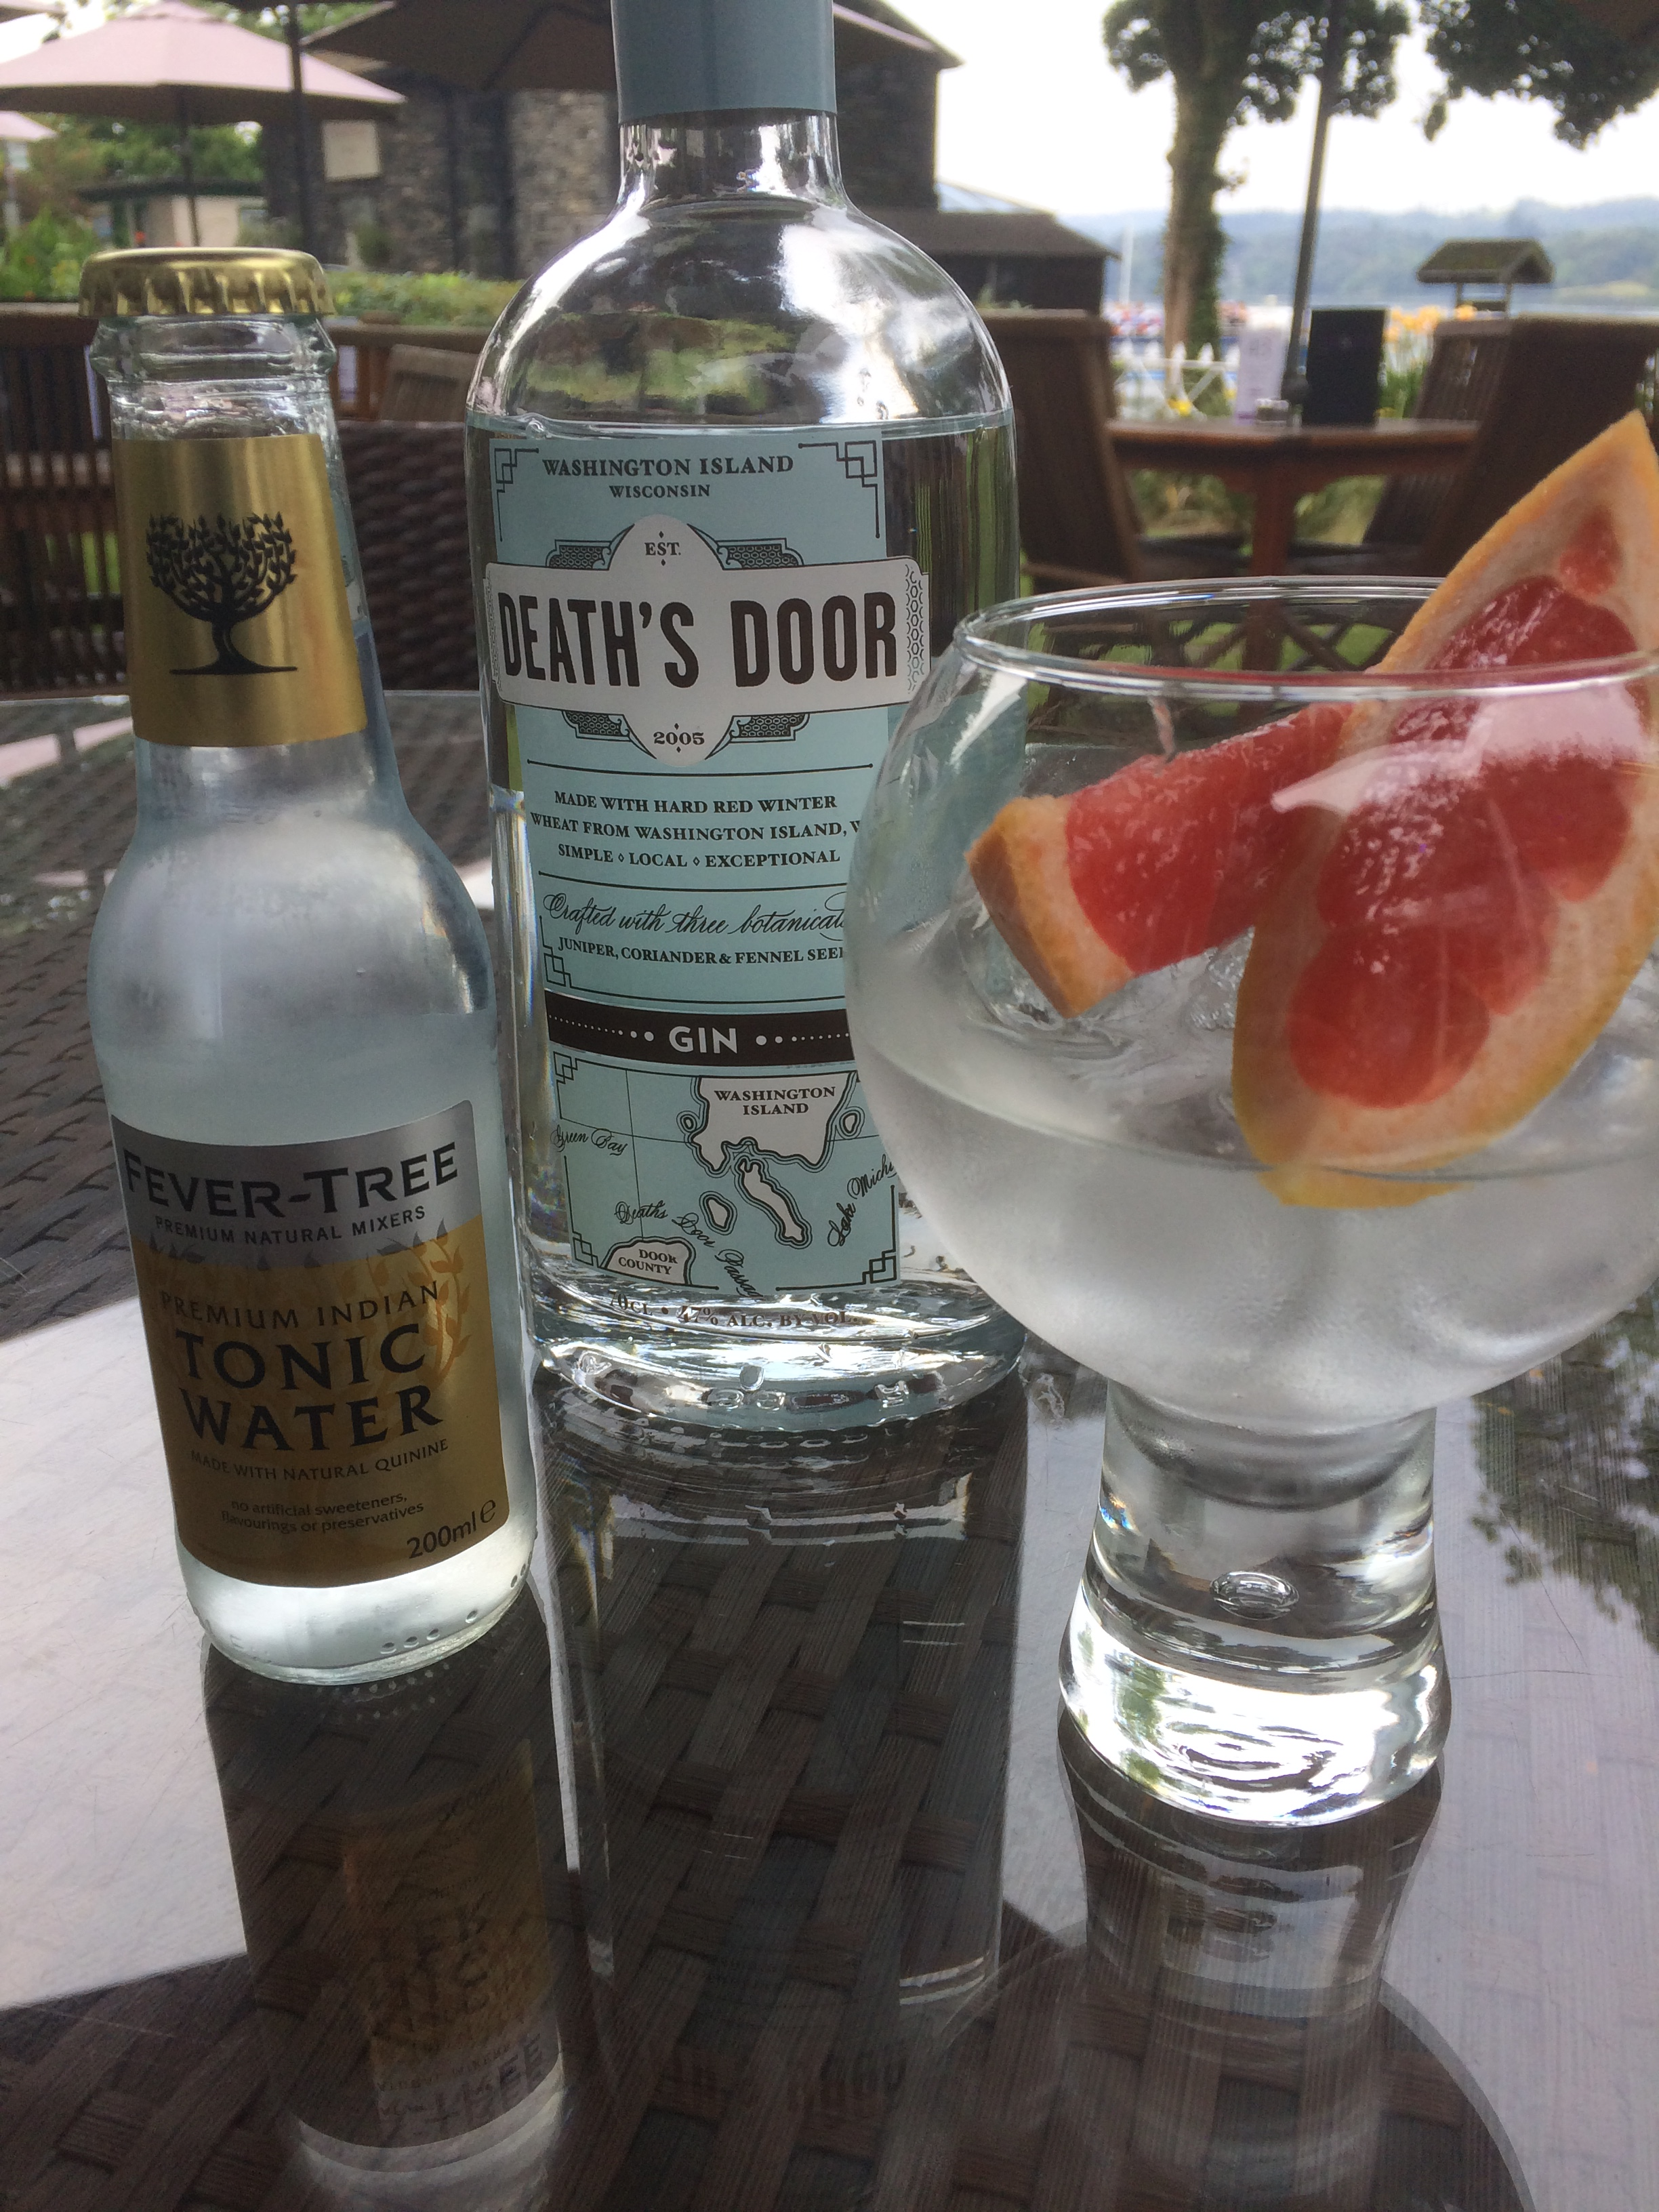 A refreshing gin and tonic served in the garden at Waterhead overlooking the lake